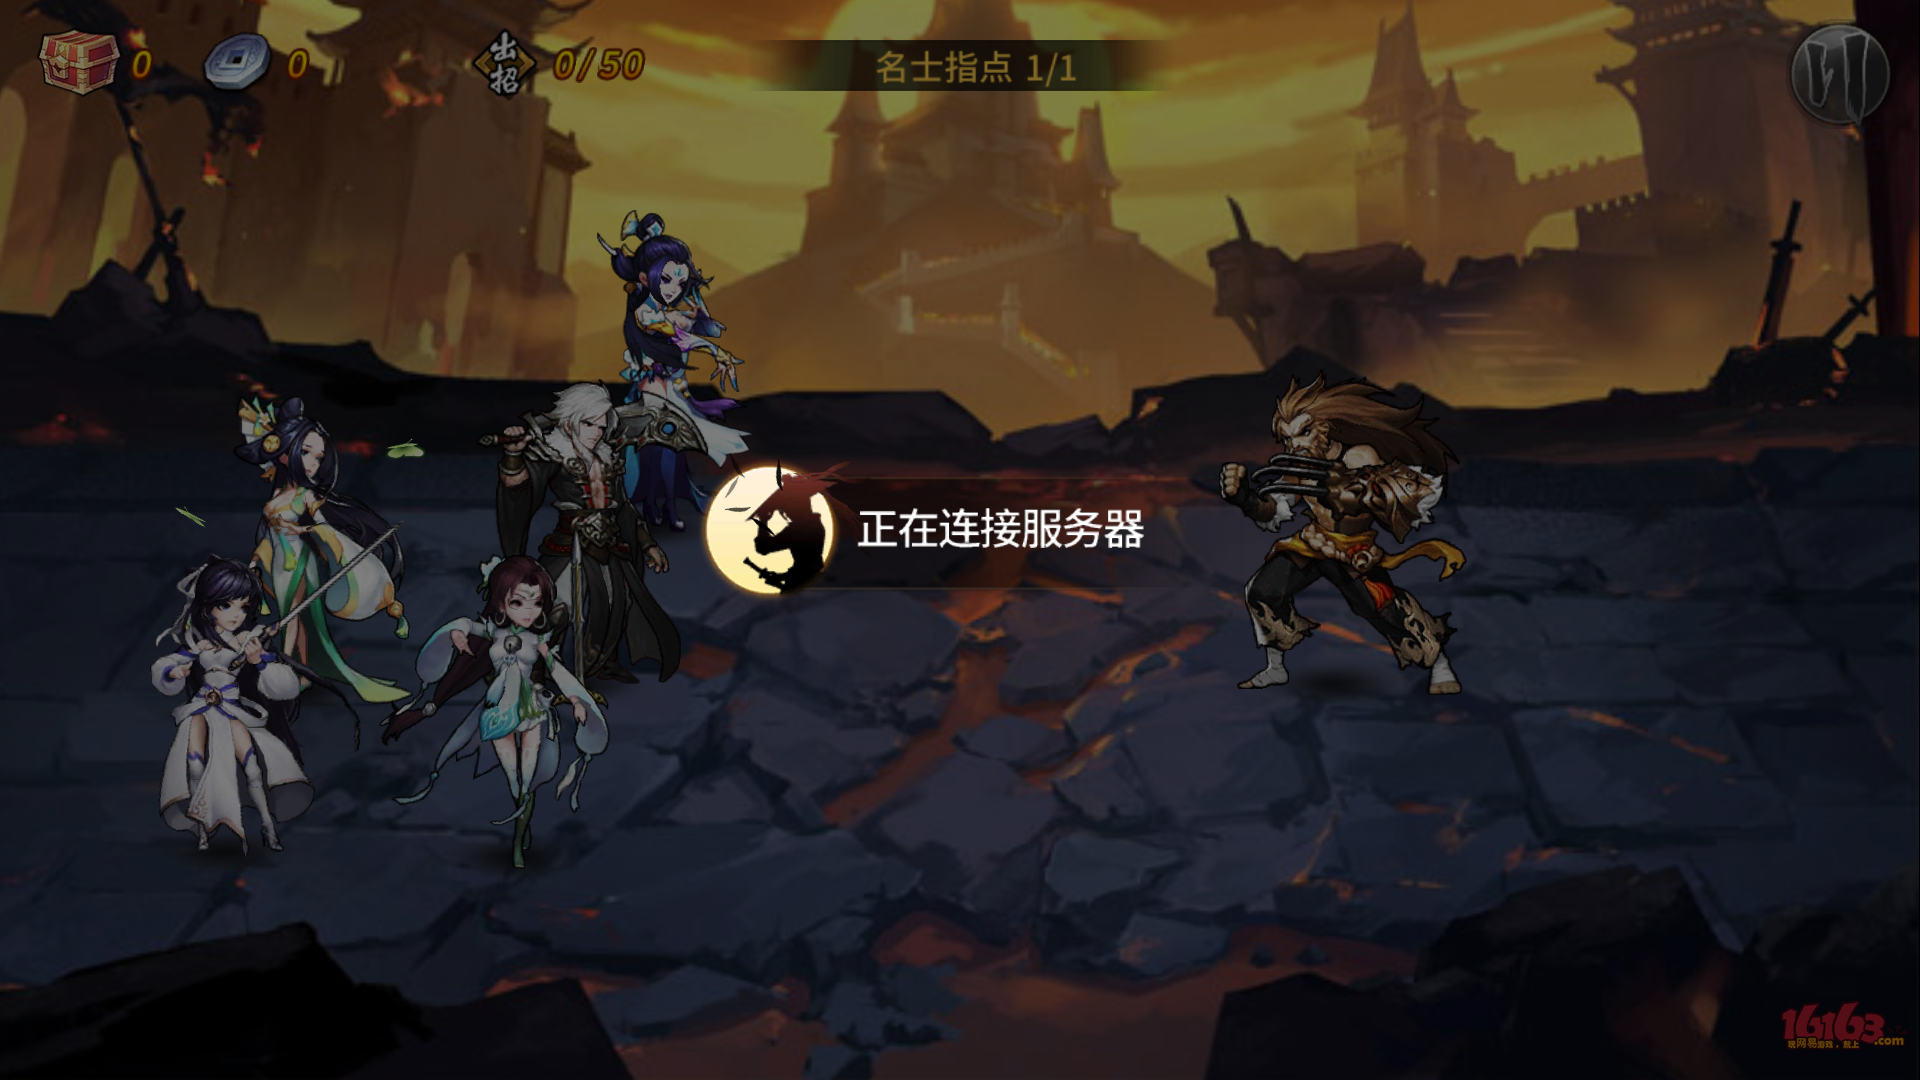 Screenshot_2017-11-06-08-14-09-157_com.netease.pm01.downjoy.png